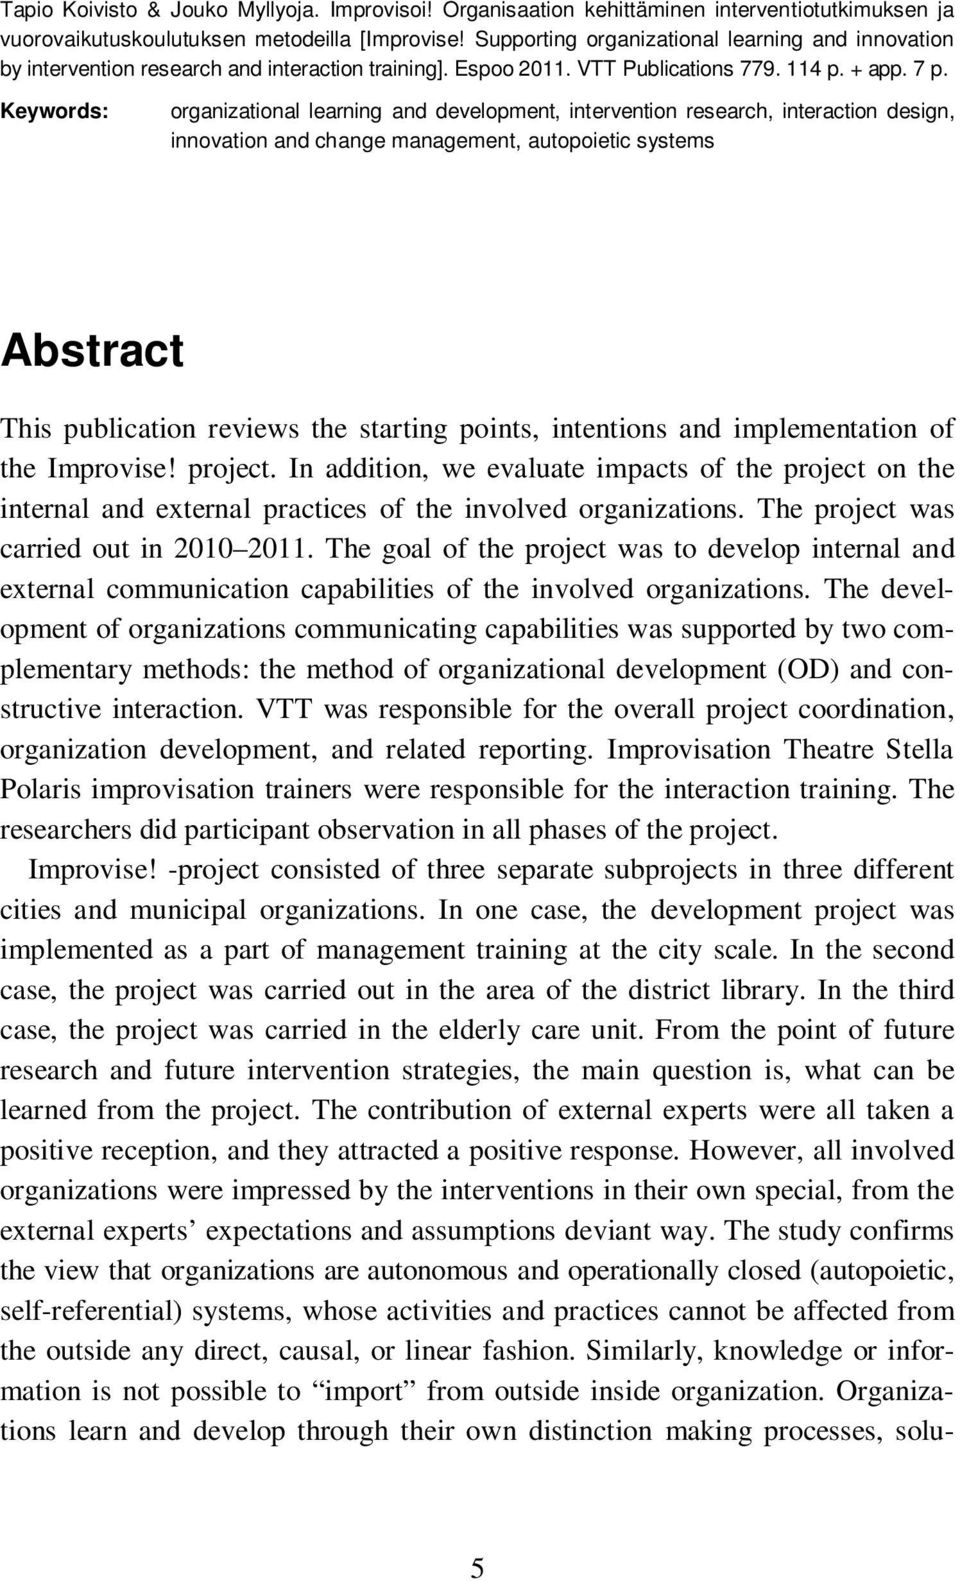 Keywords: organizational learning and development, intervention research, interaction design, innovation and change management, autopoietic systems Abstract This publication reviews the starting